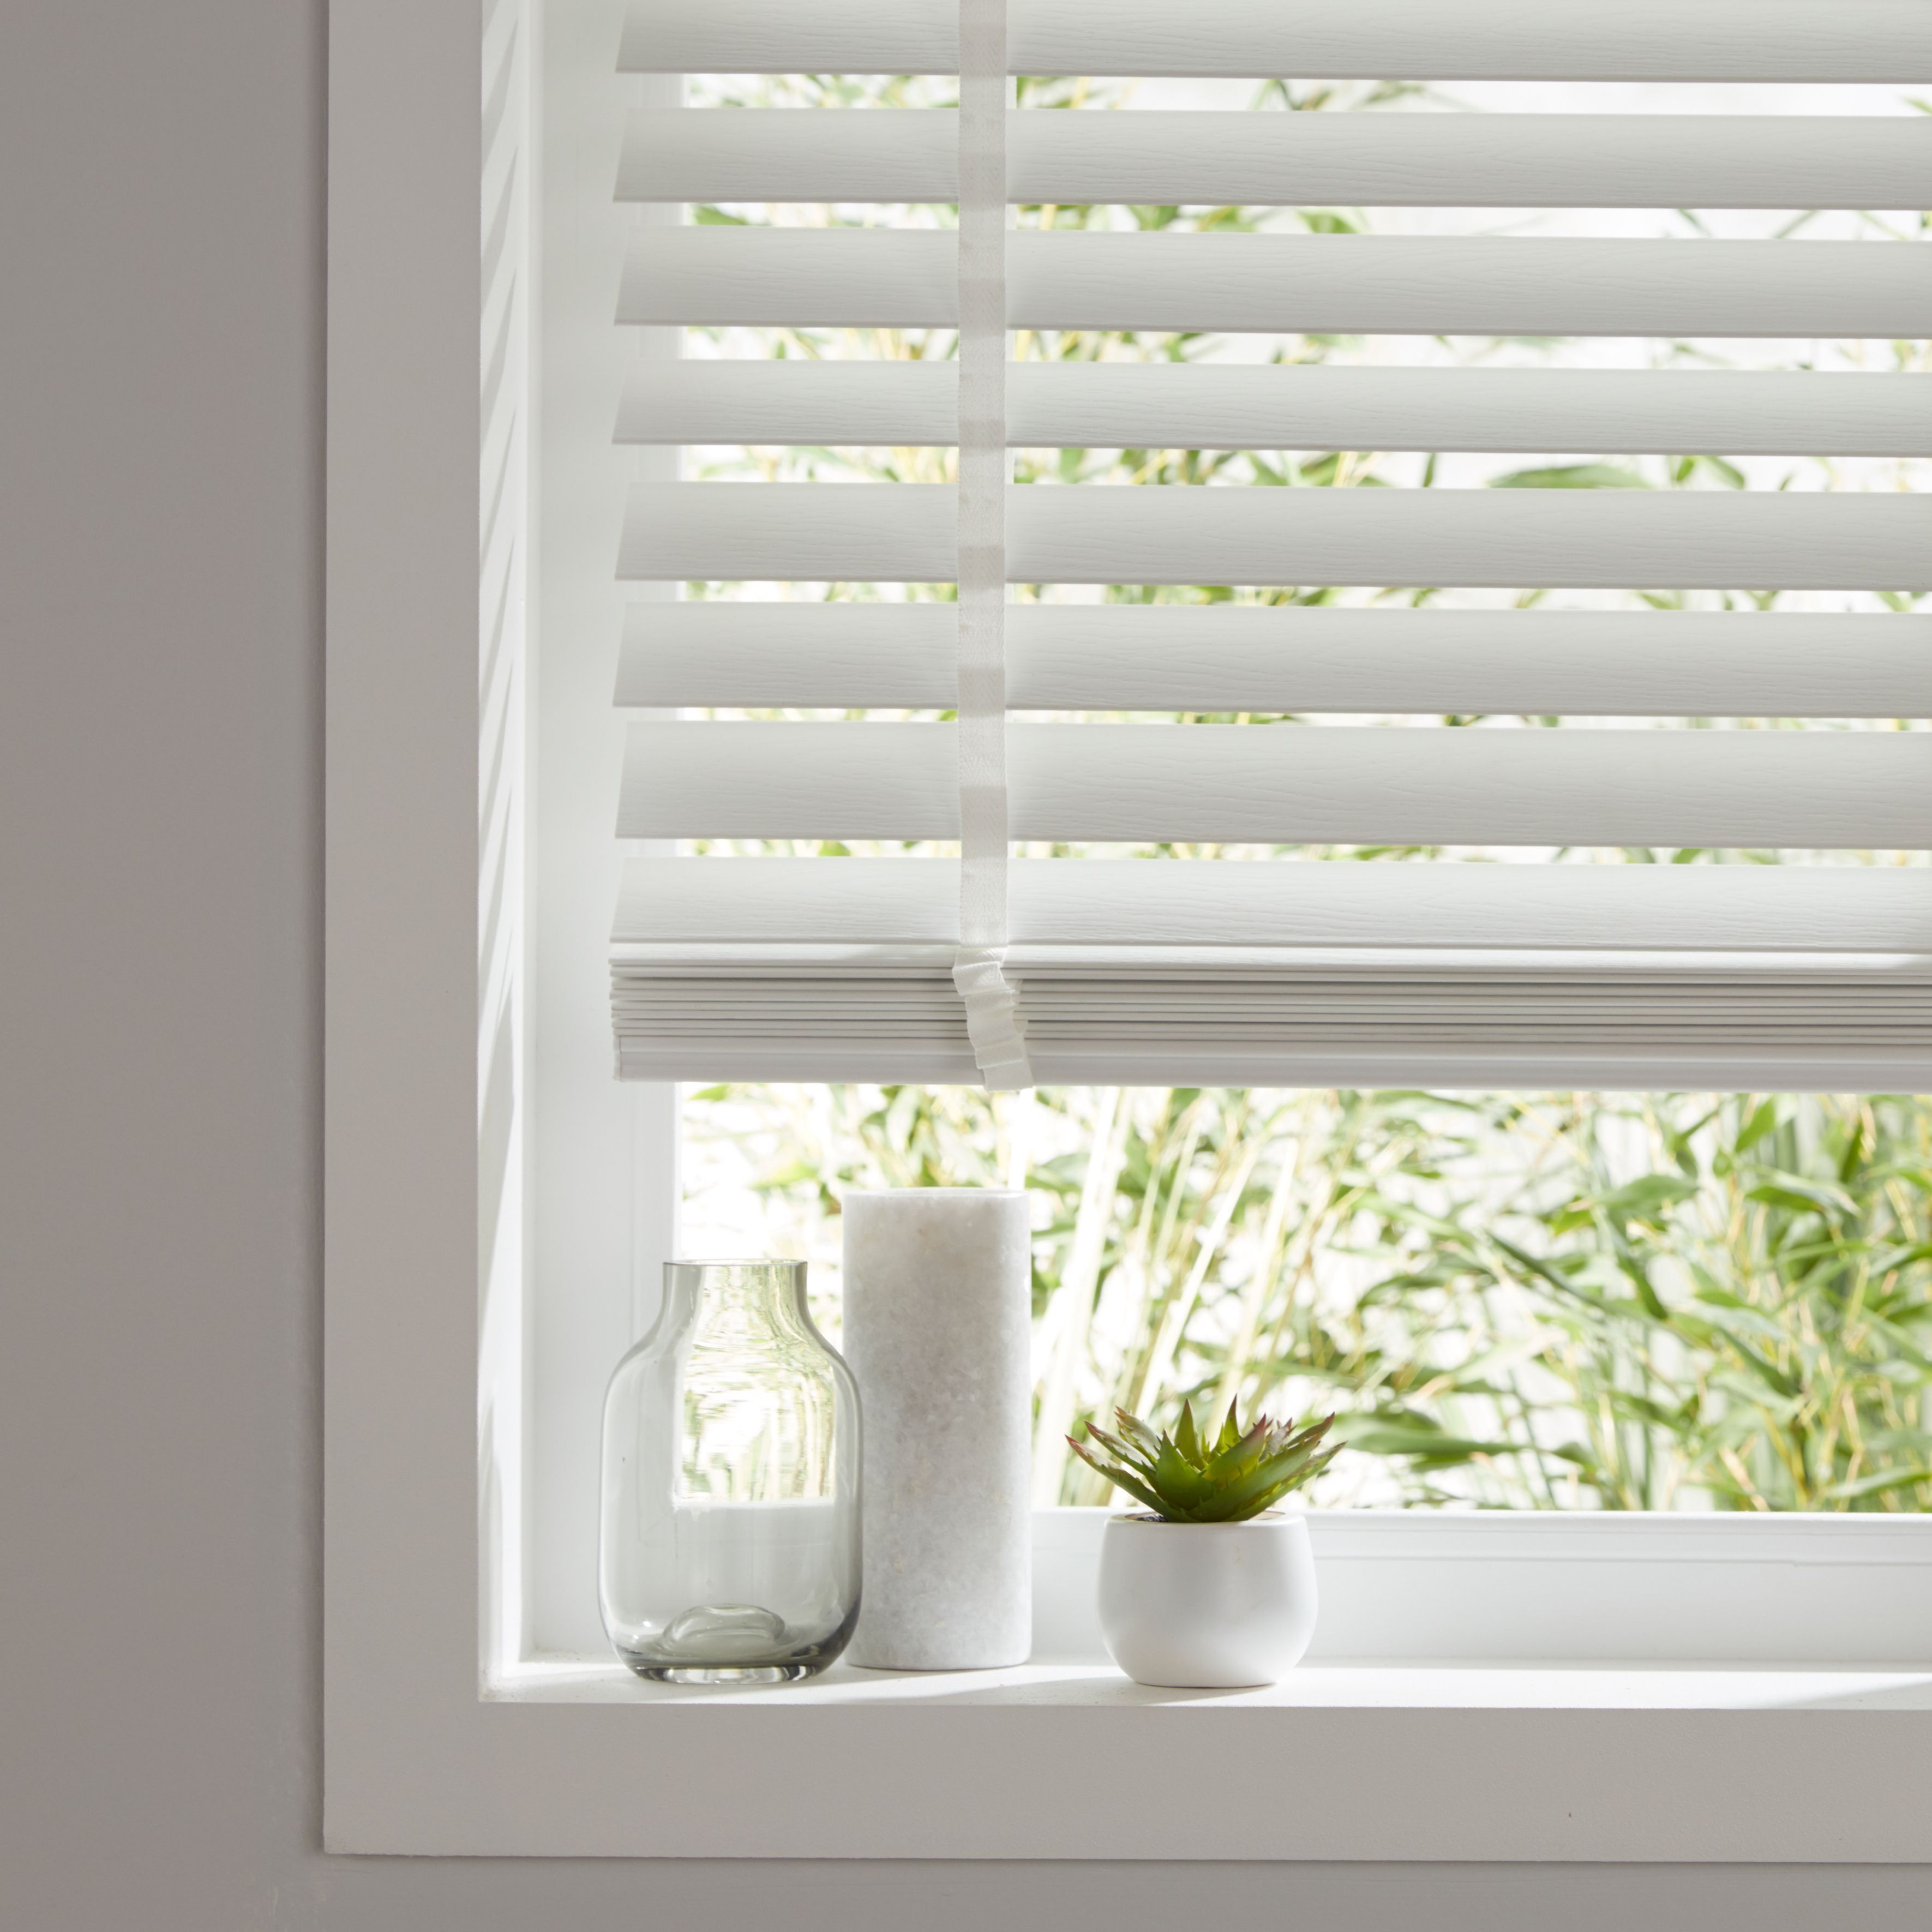 timberblindscleaner effortless for website cleaning glitz ml product timber blinds cleaner